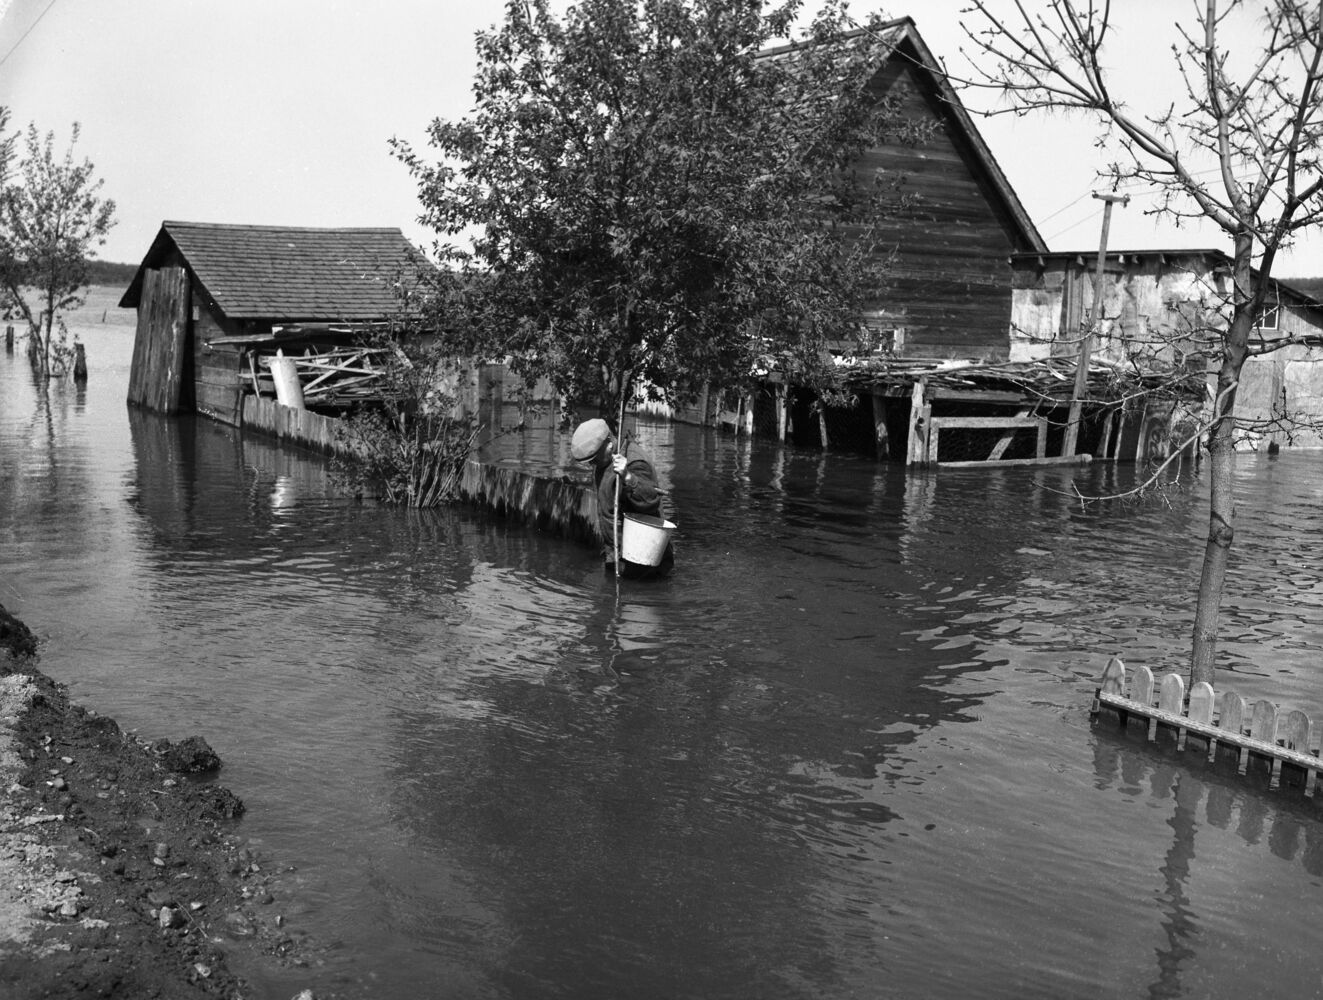 Floodwaters were precisely waist-high in this Brandon yard during the flood of 1954. (Courtesy CKX fonds, S.J. McKee Archives, Brandon University)